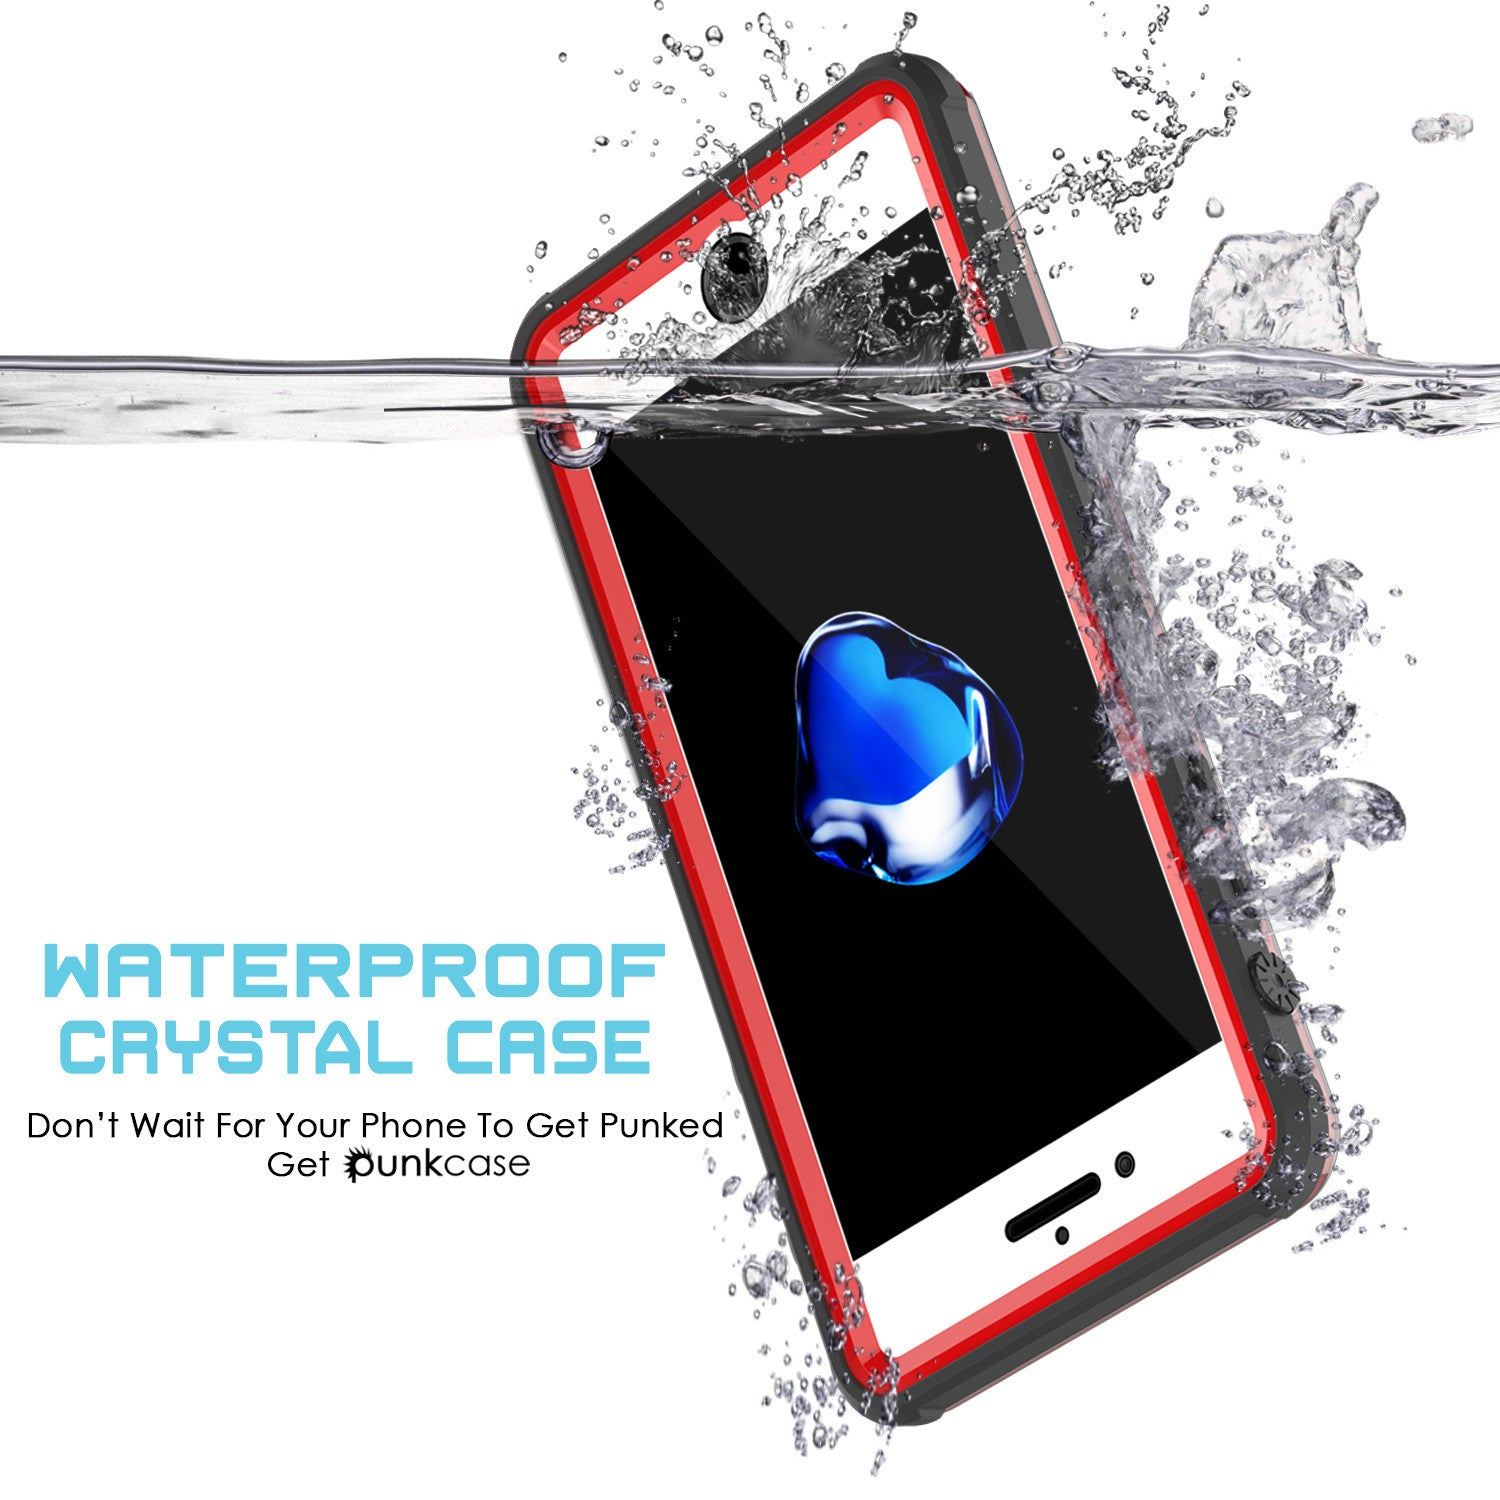 iPhone 7+ Plus Waterproof Case, PUNKcase CRYSTAL Red W/ Attached Screen Protector  | Warranty